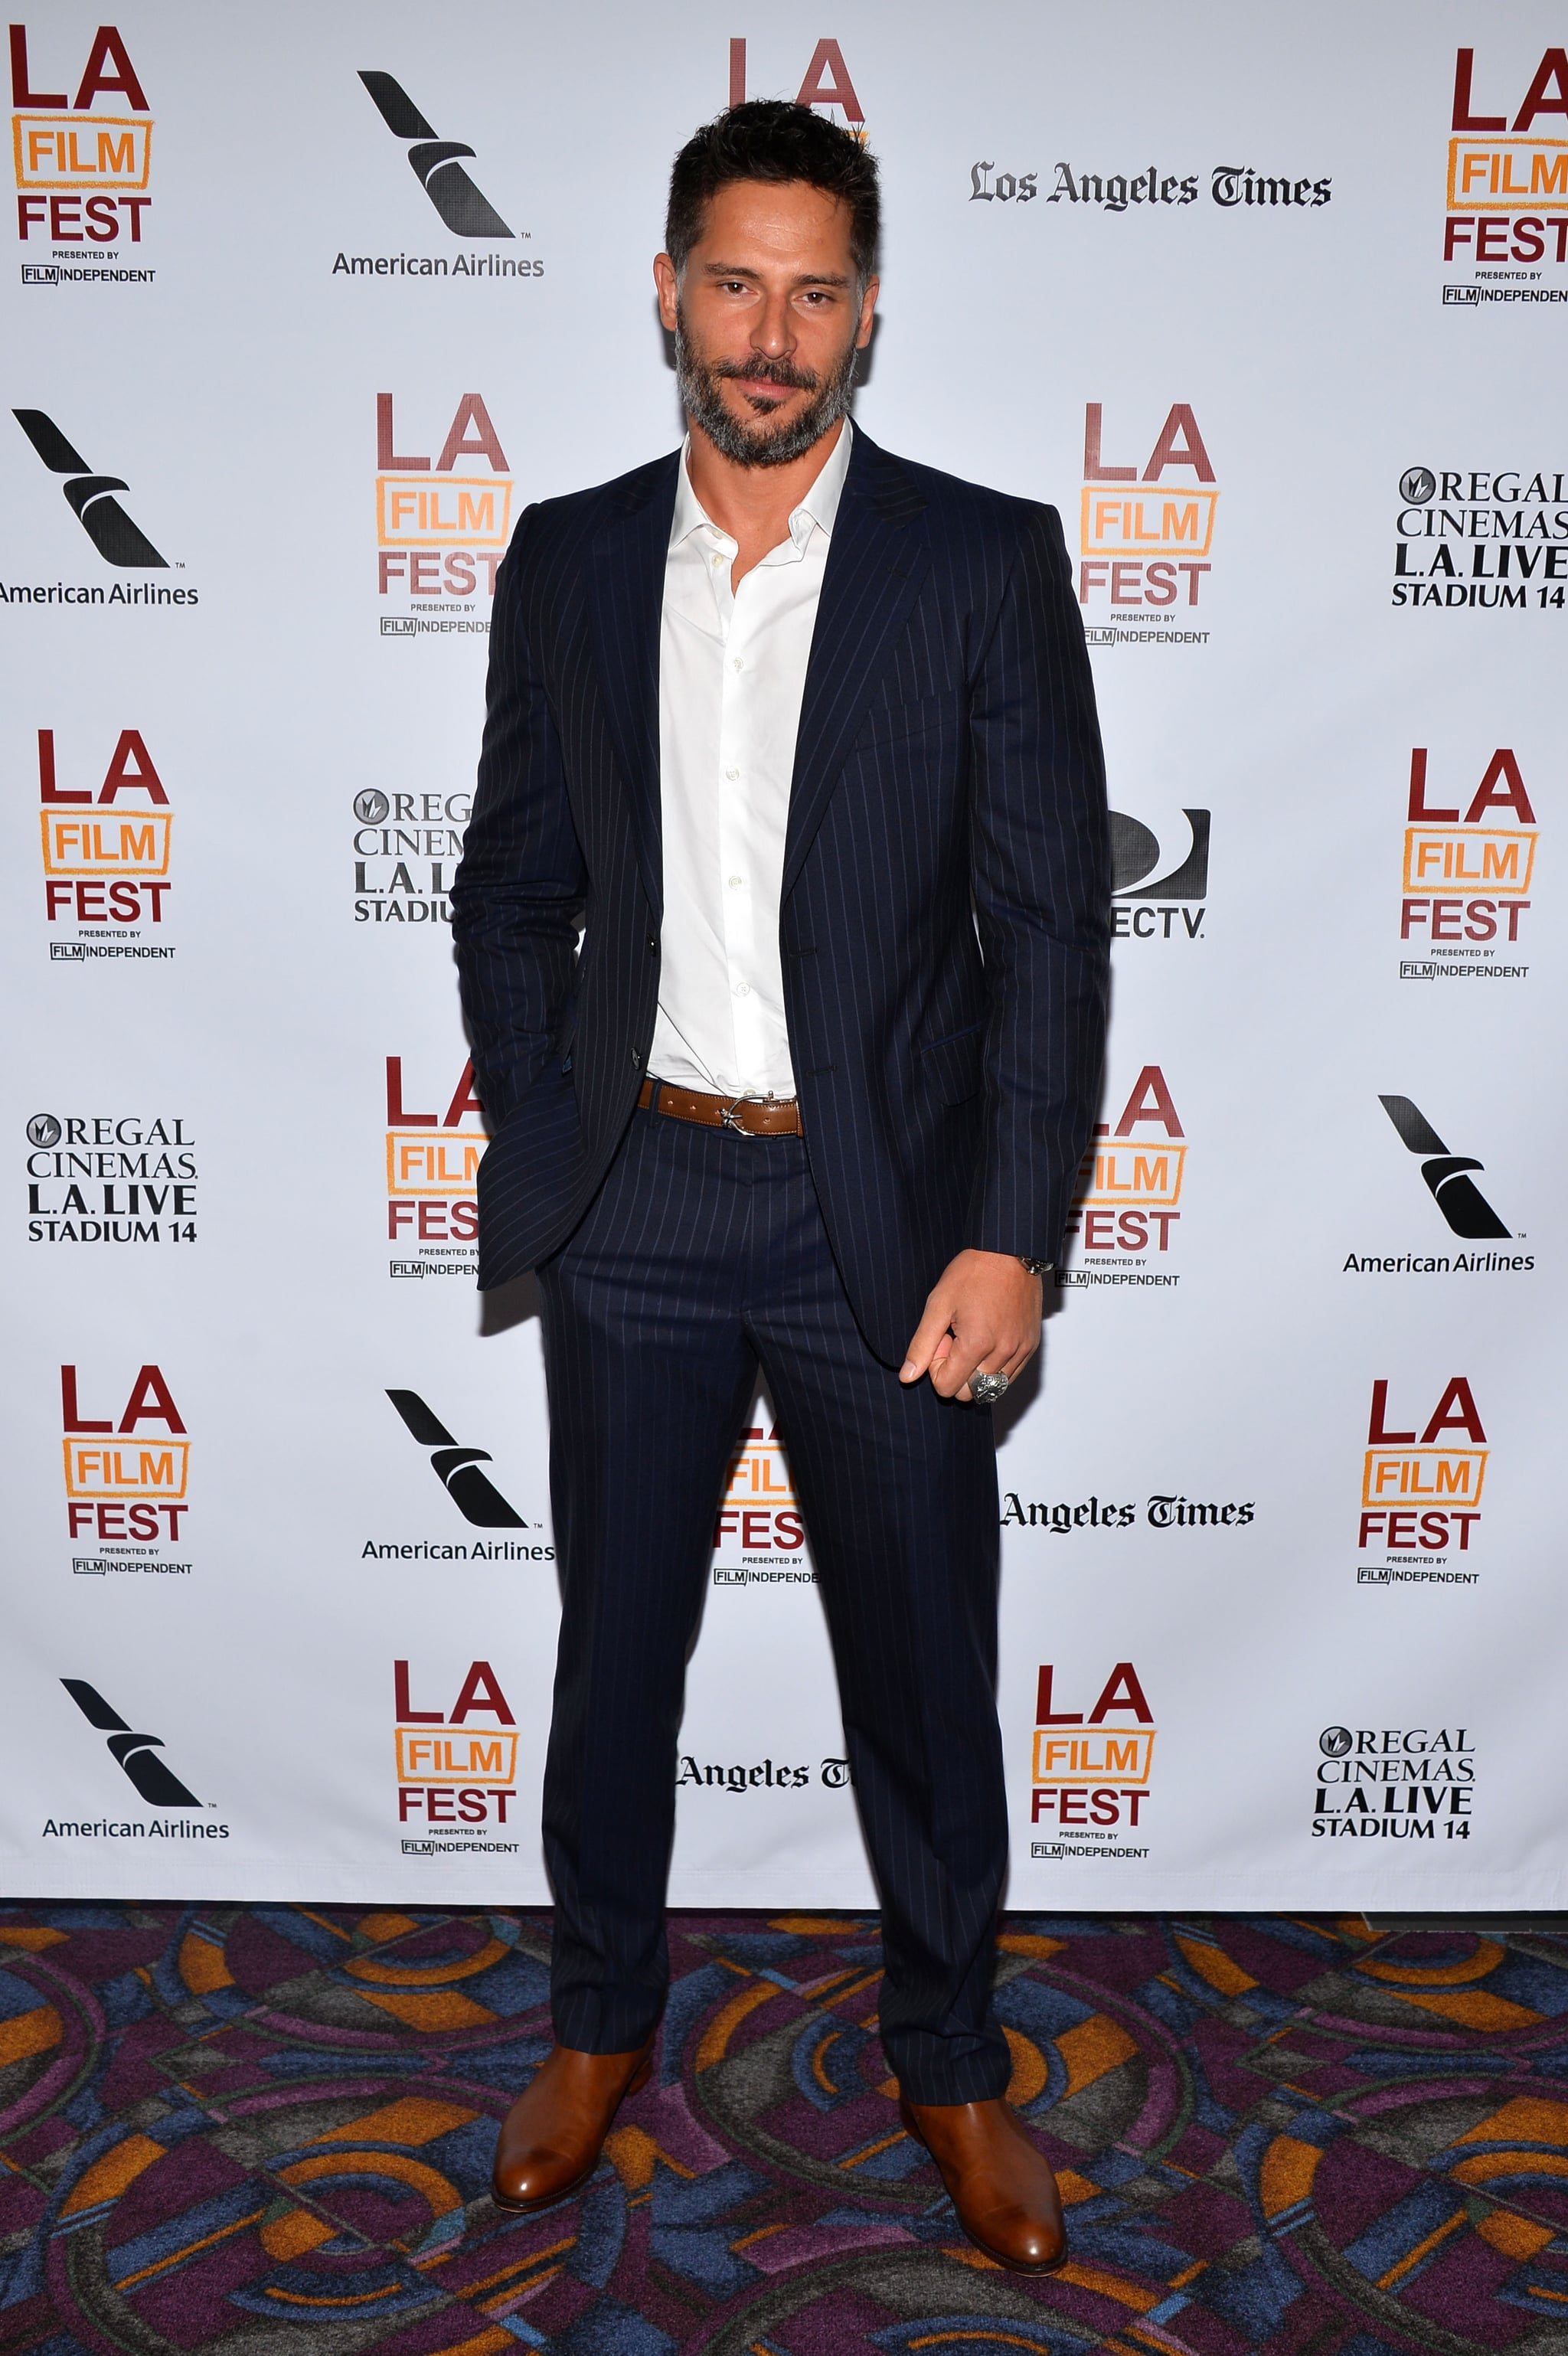 Joe Manganiello suited up for an event.